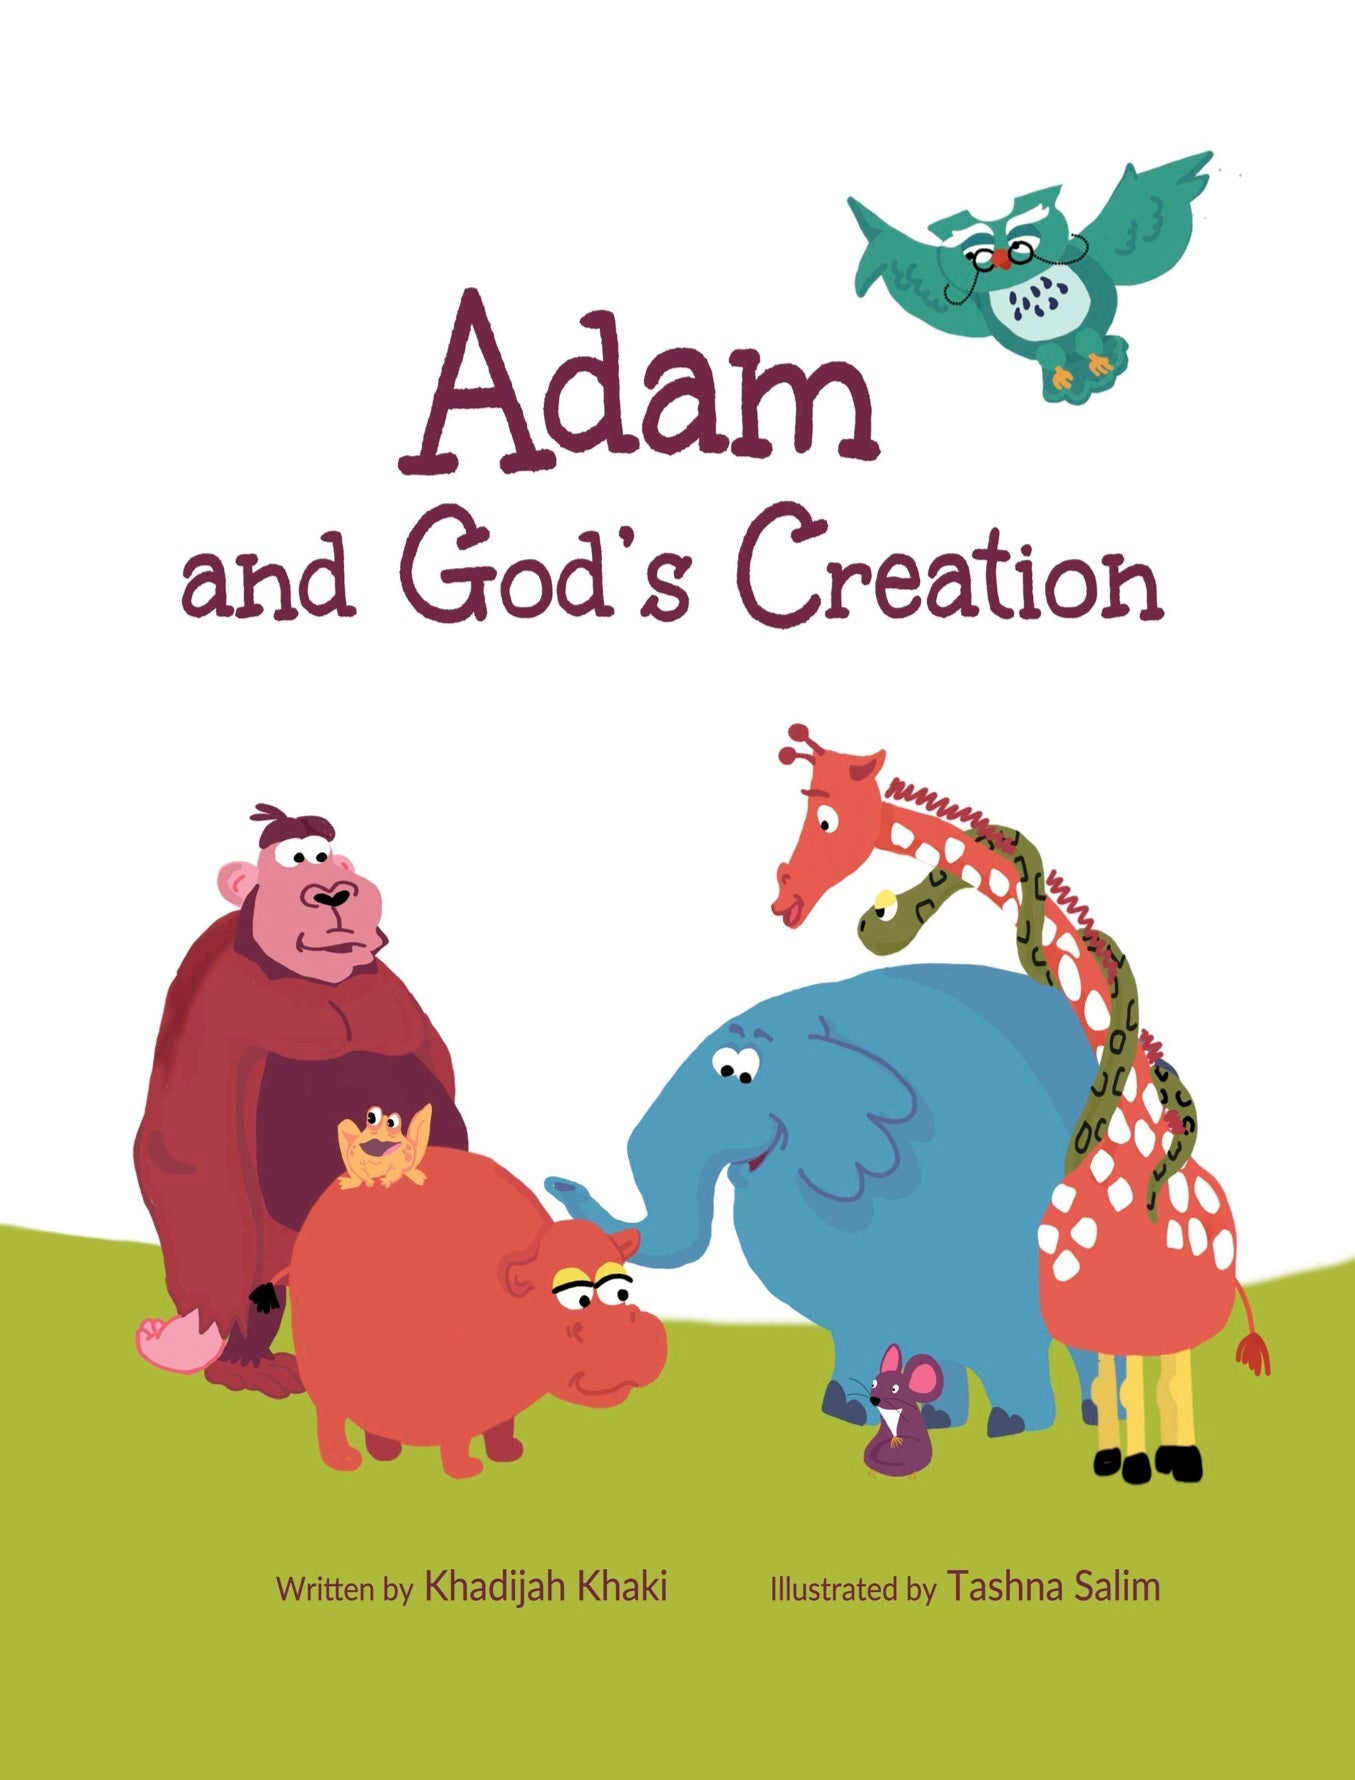 Adam and God's Creation-Islamic Books-Lunar Learners-Crescent Moon Store